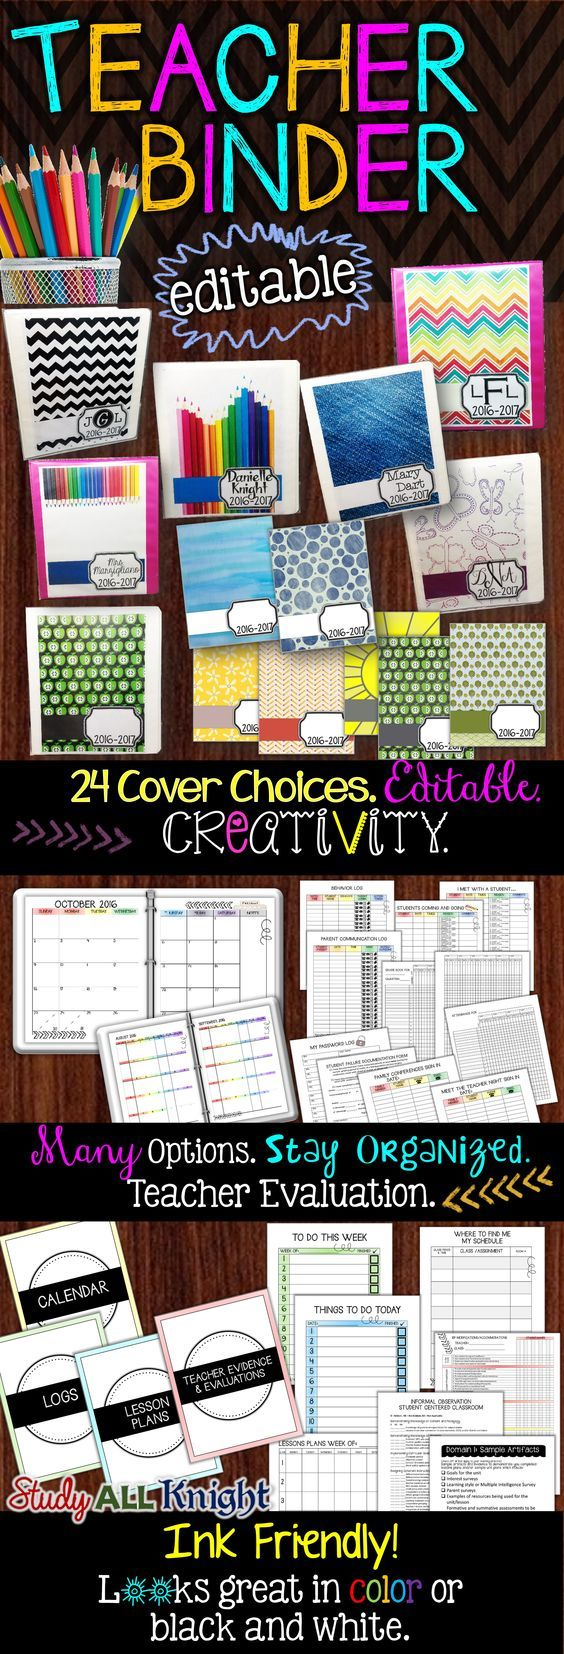 Teacher Binder Easy to Edit and Ink Friendly ($)